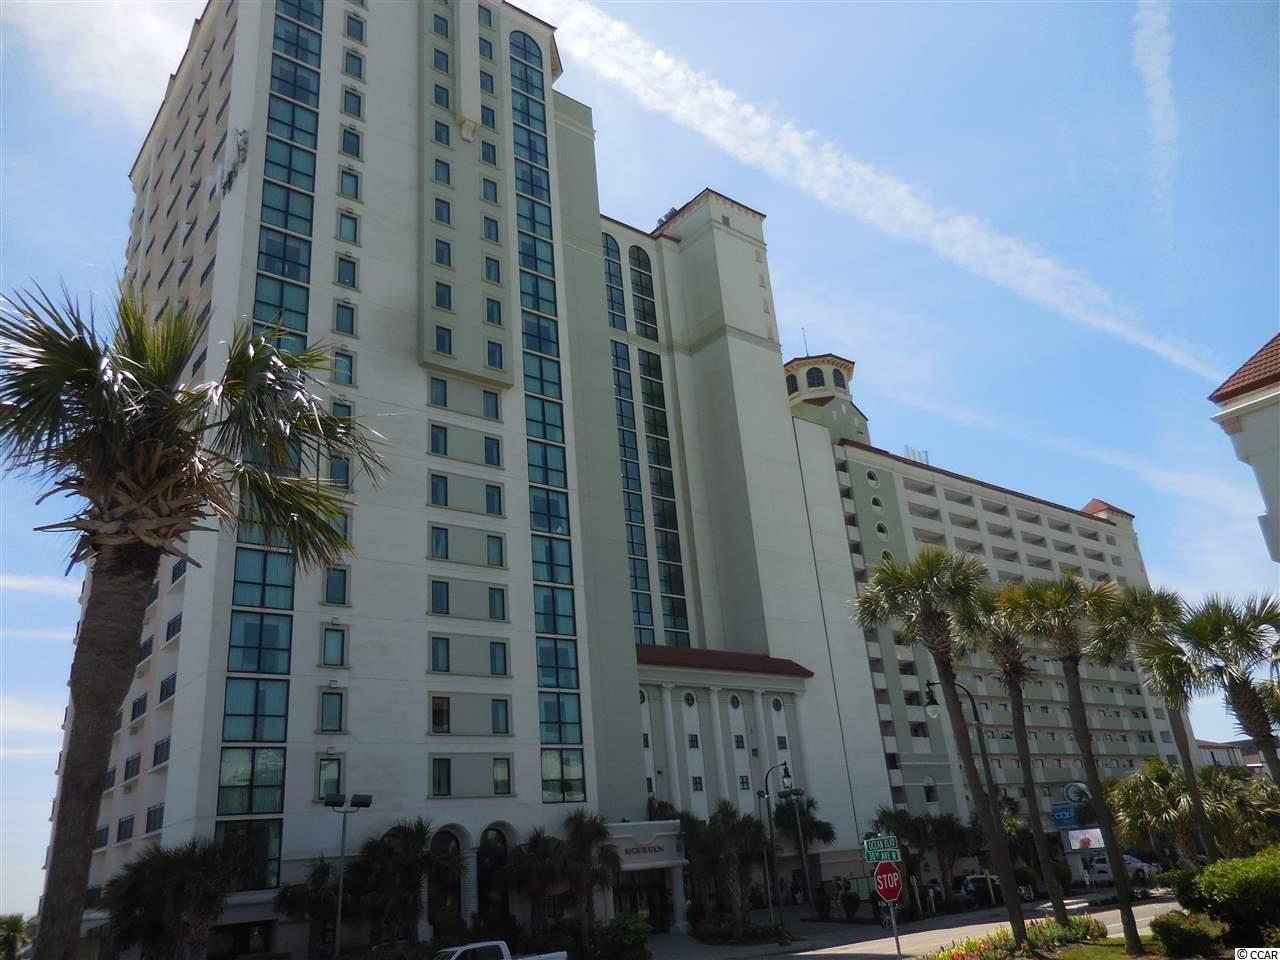 Beautiful 1 bedroom oceanfront 12th floor unit with a King size bed in bedroom. Murphy bed and sleeper sofa in living area The Caribbean Resort is consistently ranked as one of the top resort destinations in Myrtle Beach. Located in the heart of Myrtle Beach and located next door to the The Sea Captains House Restaurant offering breakfast , lunch and dinner,  a local favorite for over 50 plus years. The Resort boasts incredible out door water park, indoor and ocean front pool, lazy river, and jacuzzi . Located at the property is a Starbucks and Ice Cream Shop. The Caribbean Resort is a perfect destination for family vacations and this property is waiting for a new owner to enjoy and experience owning a piece of the Grand Strand. Interior pictures are of a similar 1 bedroom king unit at the Caribbean Oceanfront Suite Tower. Pictures to be updated